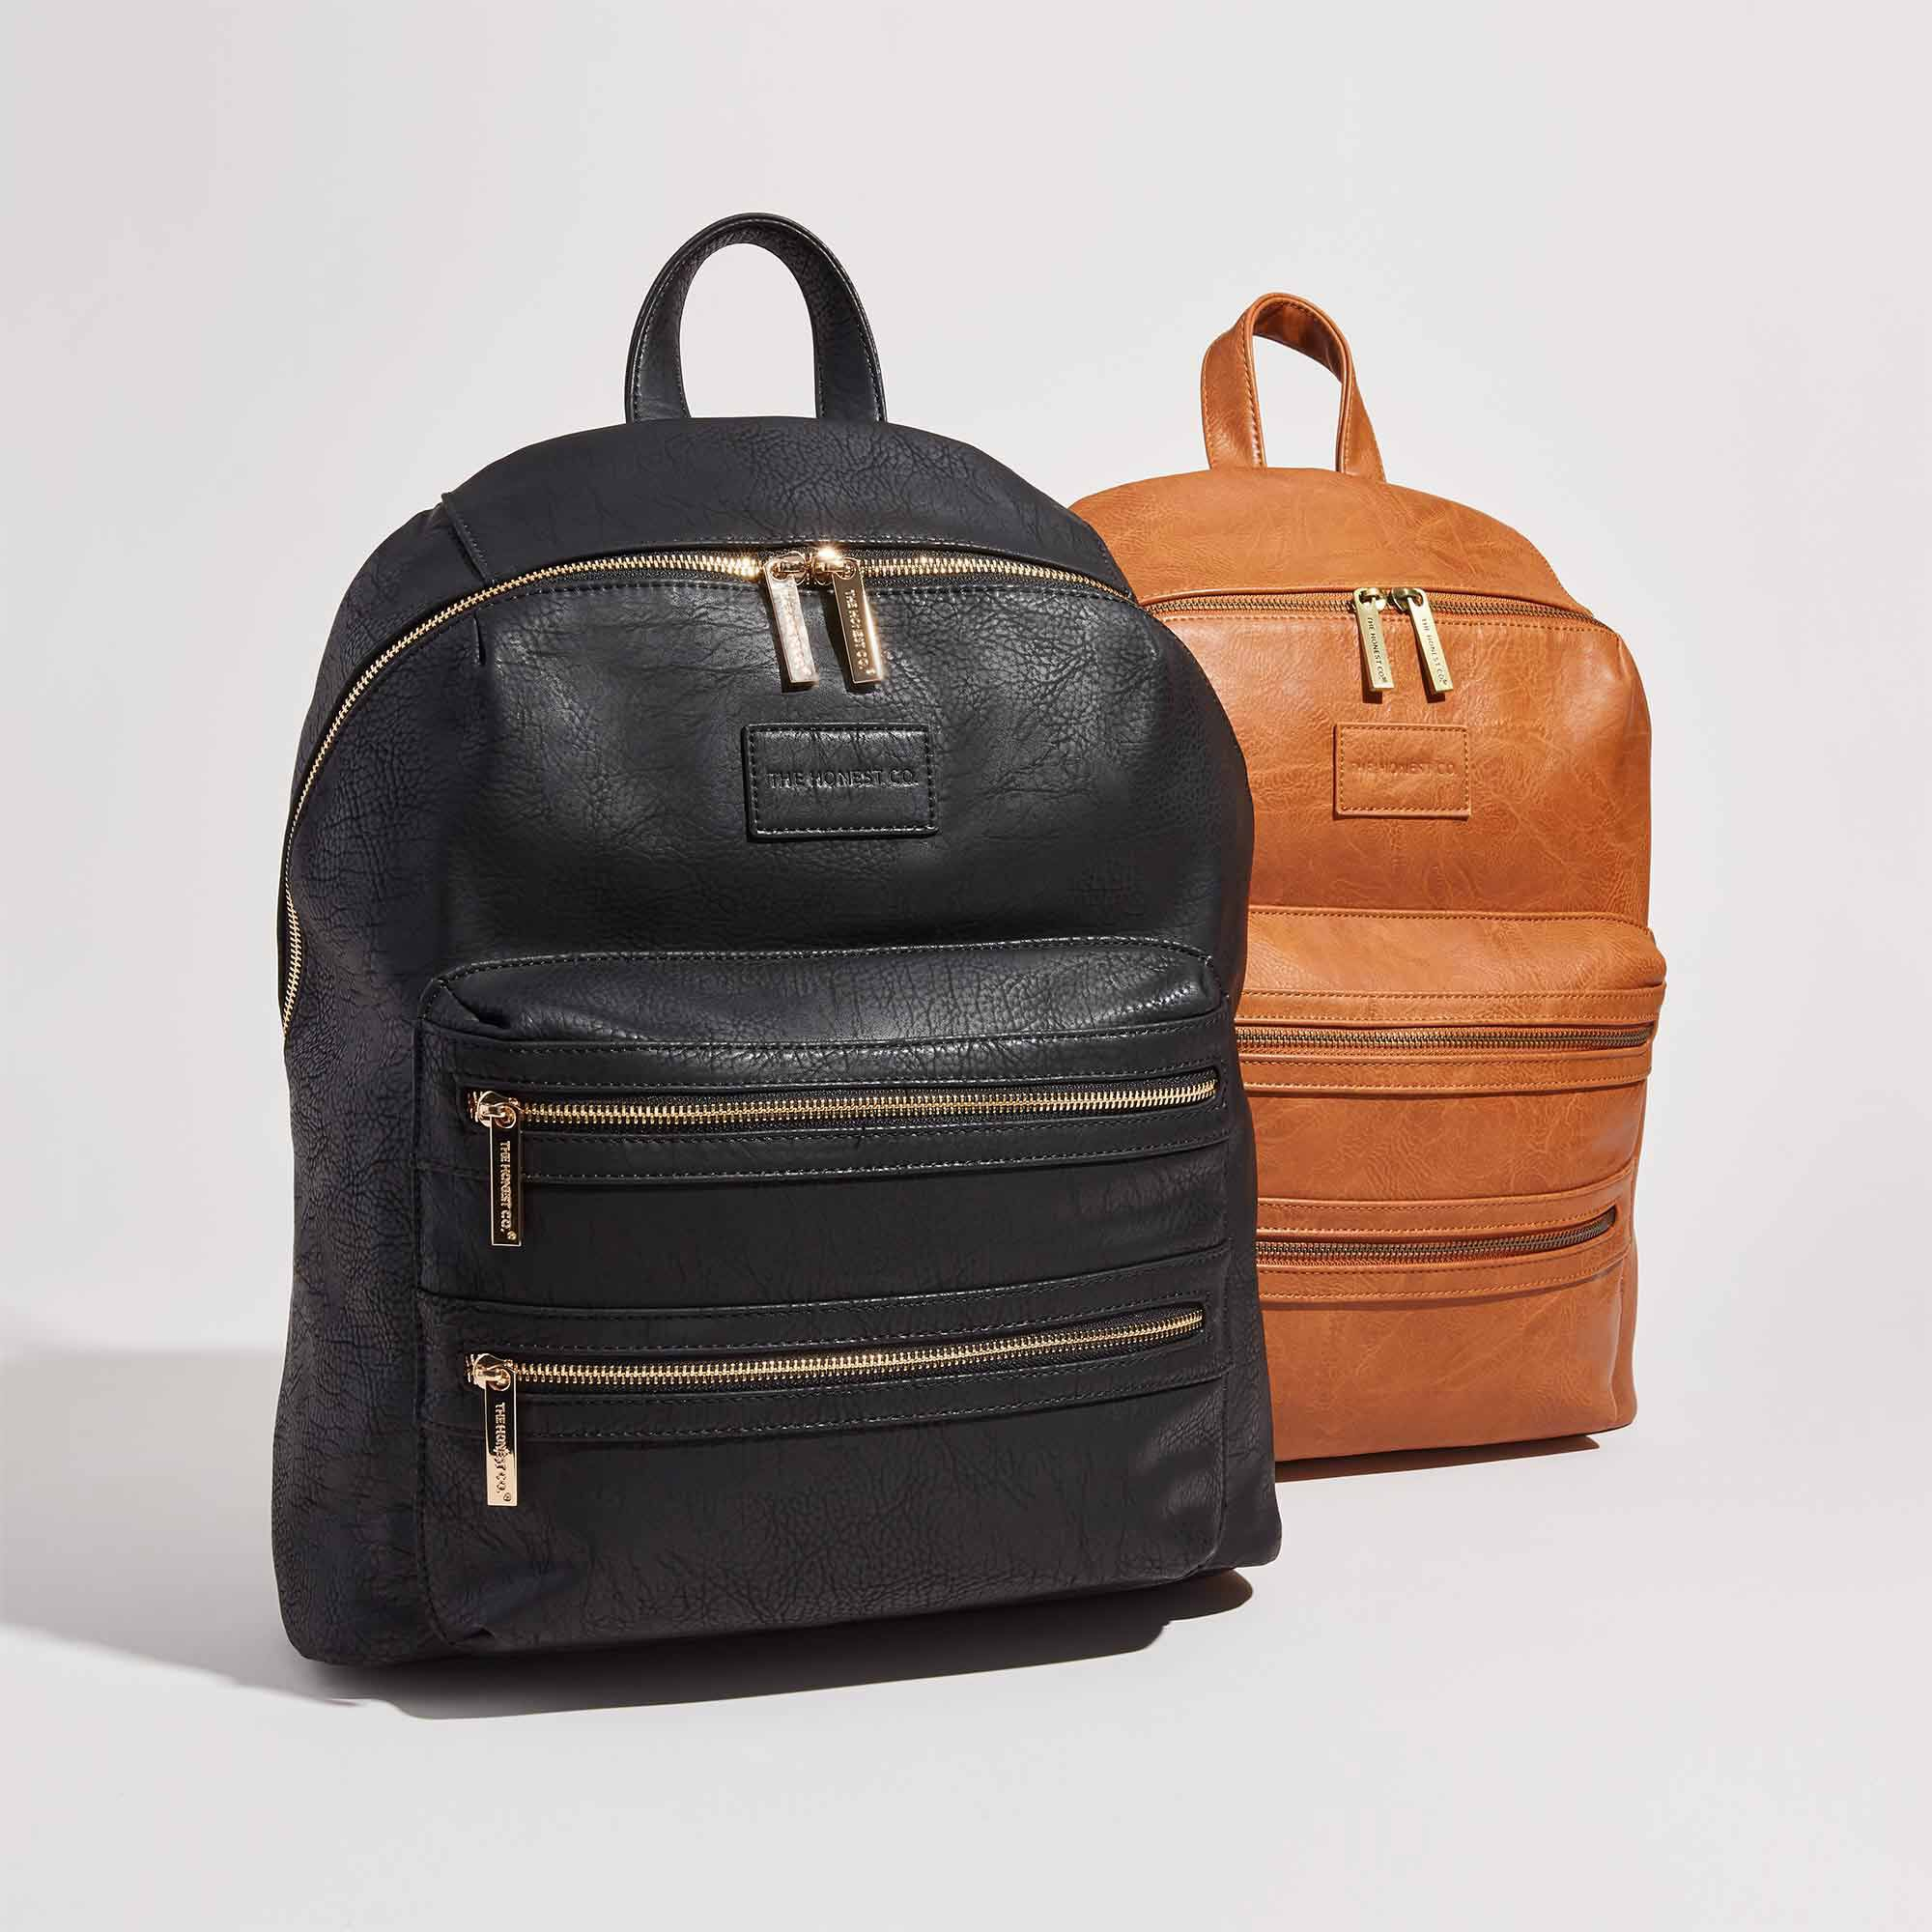 group image of both the black and cognac leather backpacks, front facing